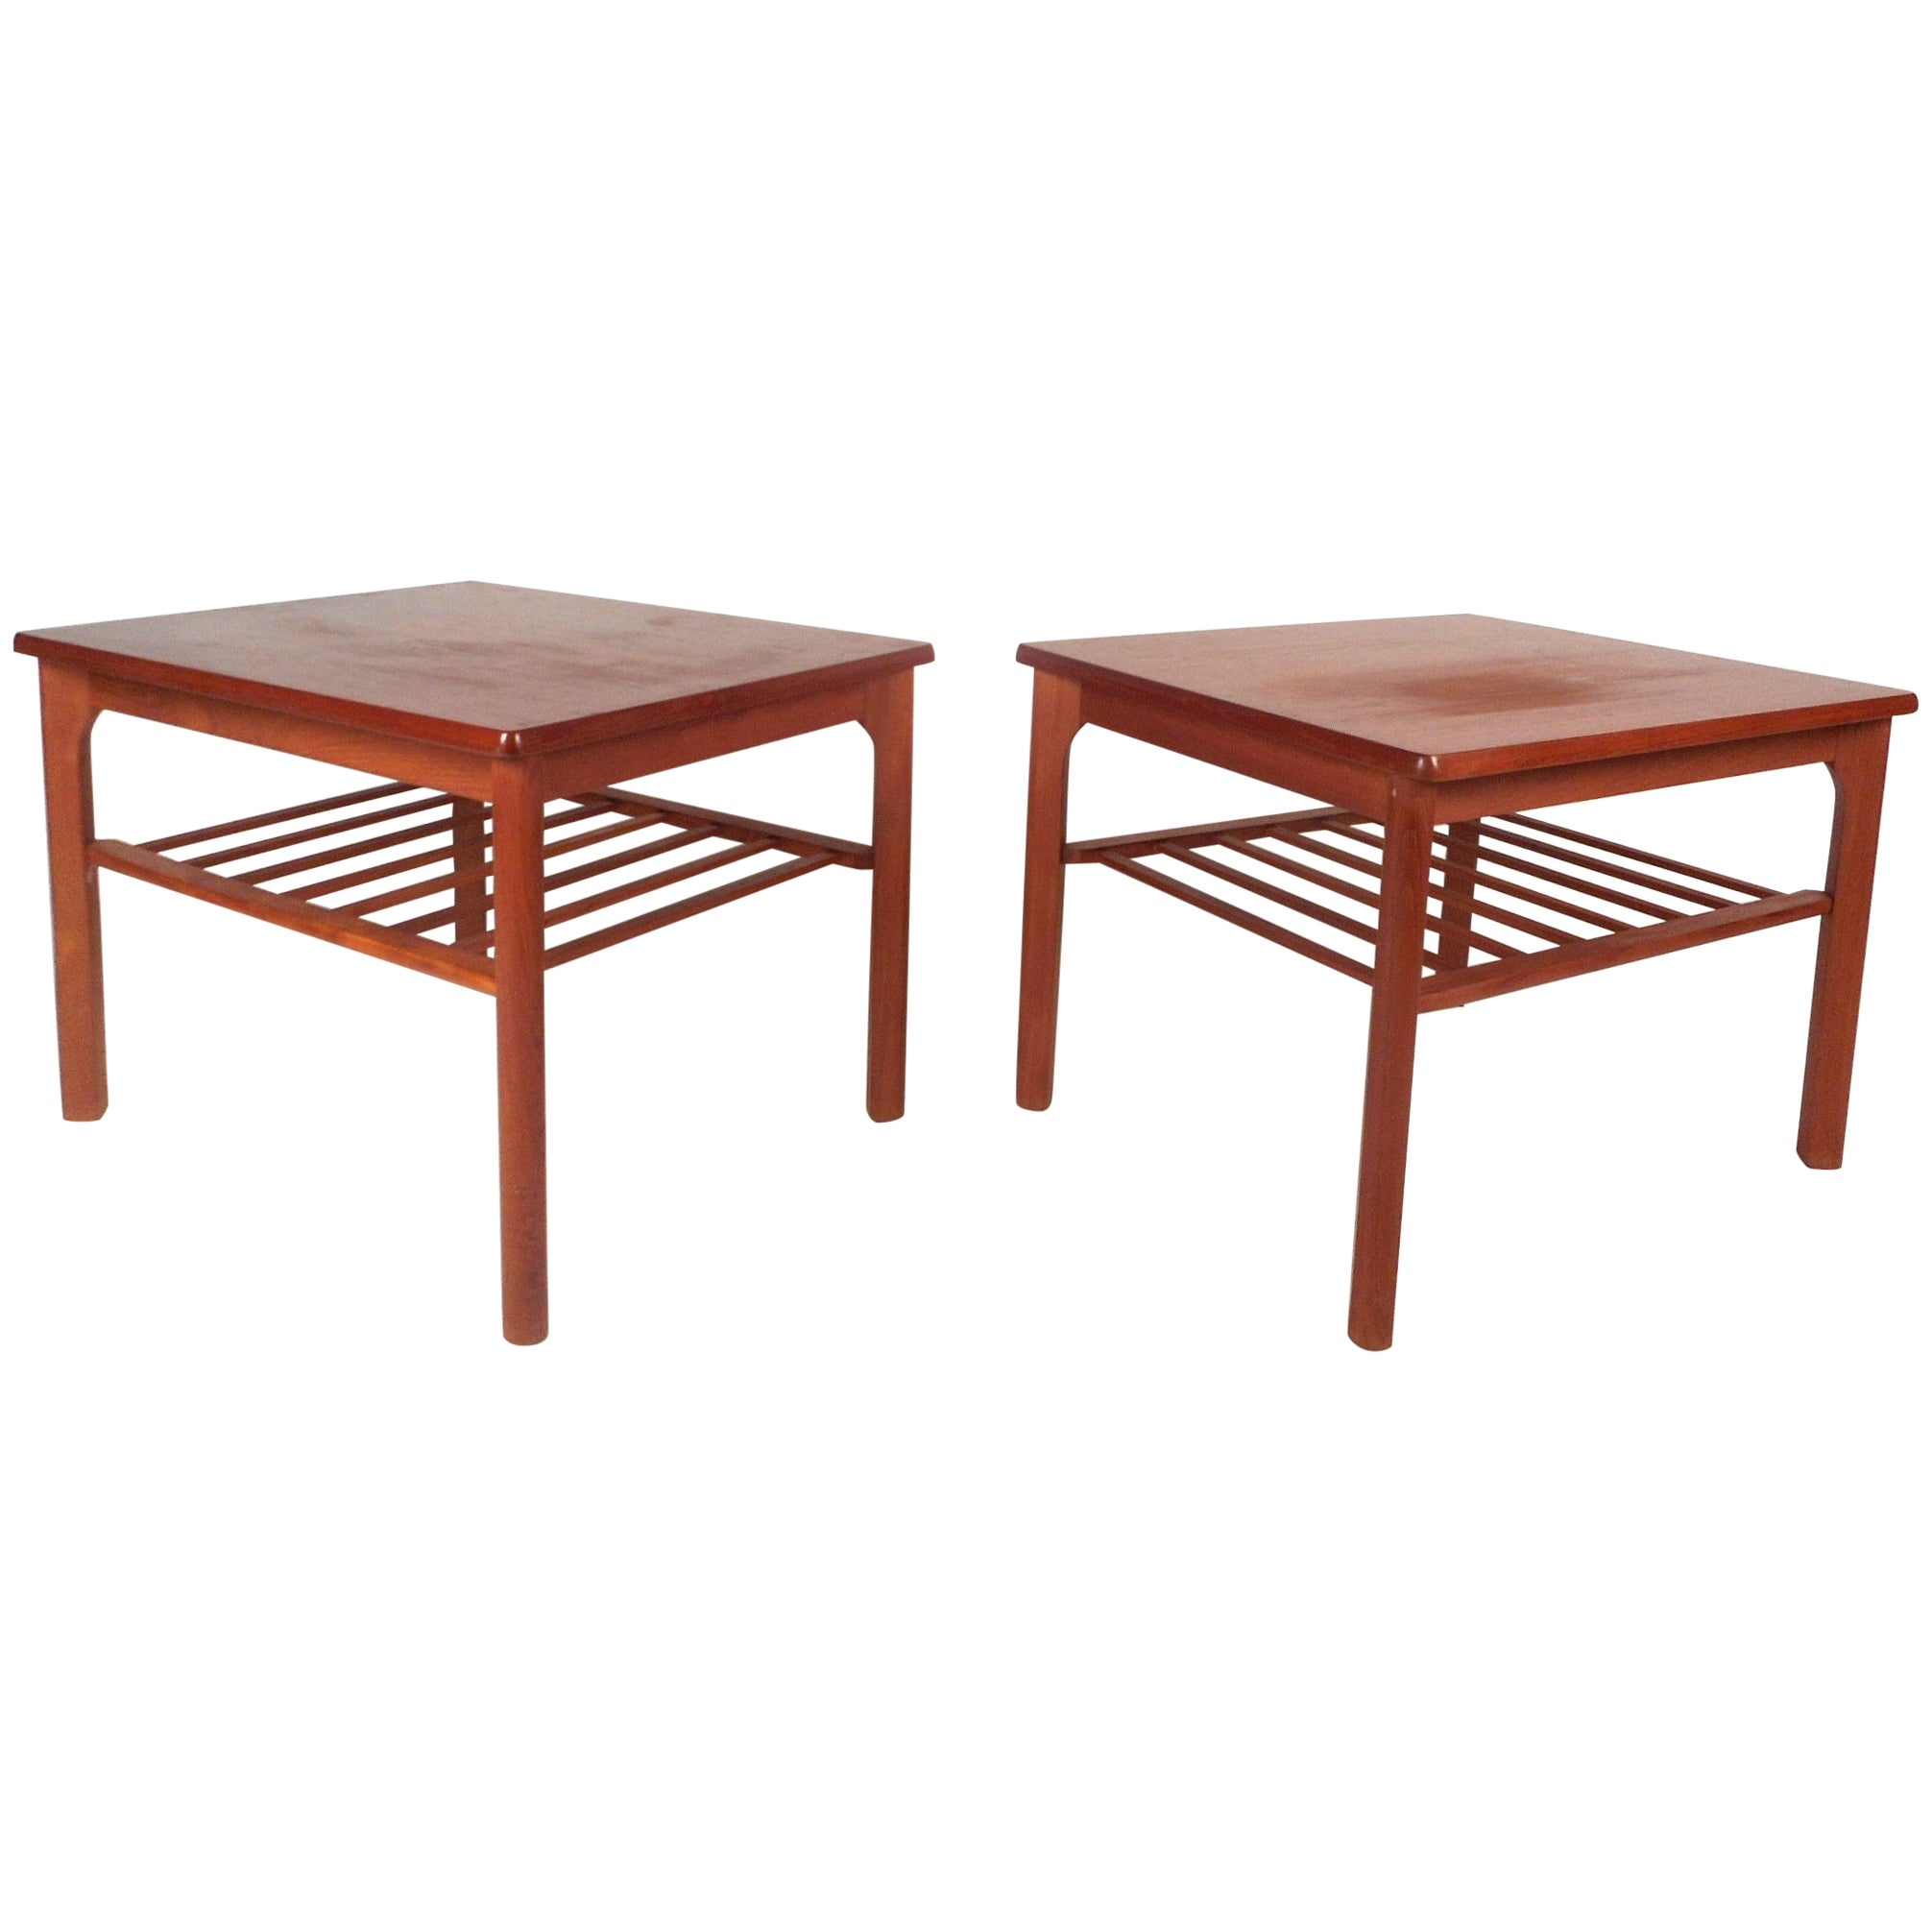 Pair of Mid-Century Modern Danish Teak End Tables by Mobelfabrikken Toften